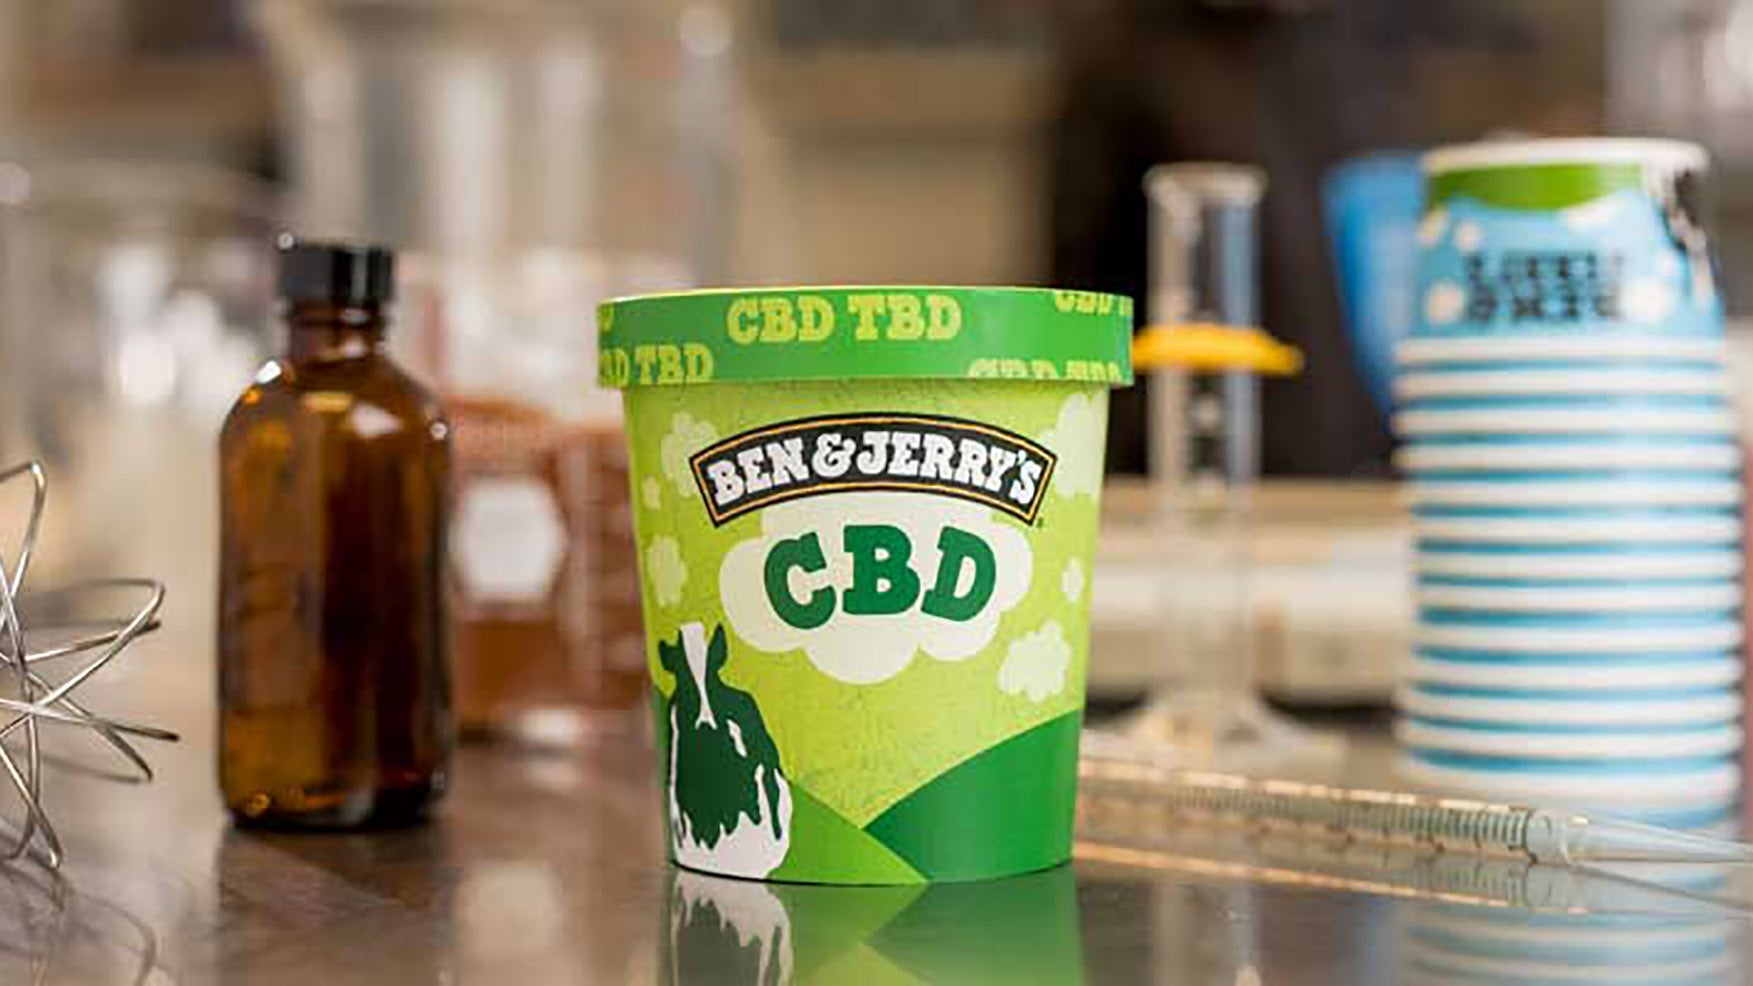 Ben & Jerry's Hopes To Stay Incredibly On-Brand With CBD Ice Cream